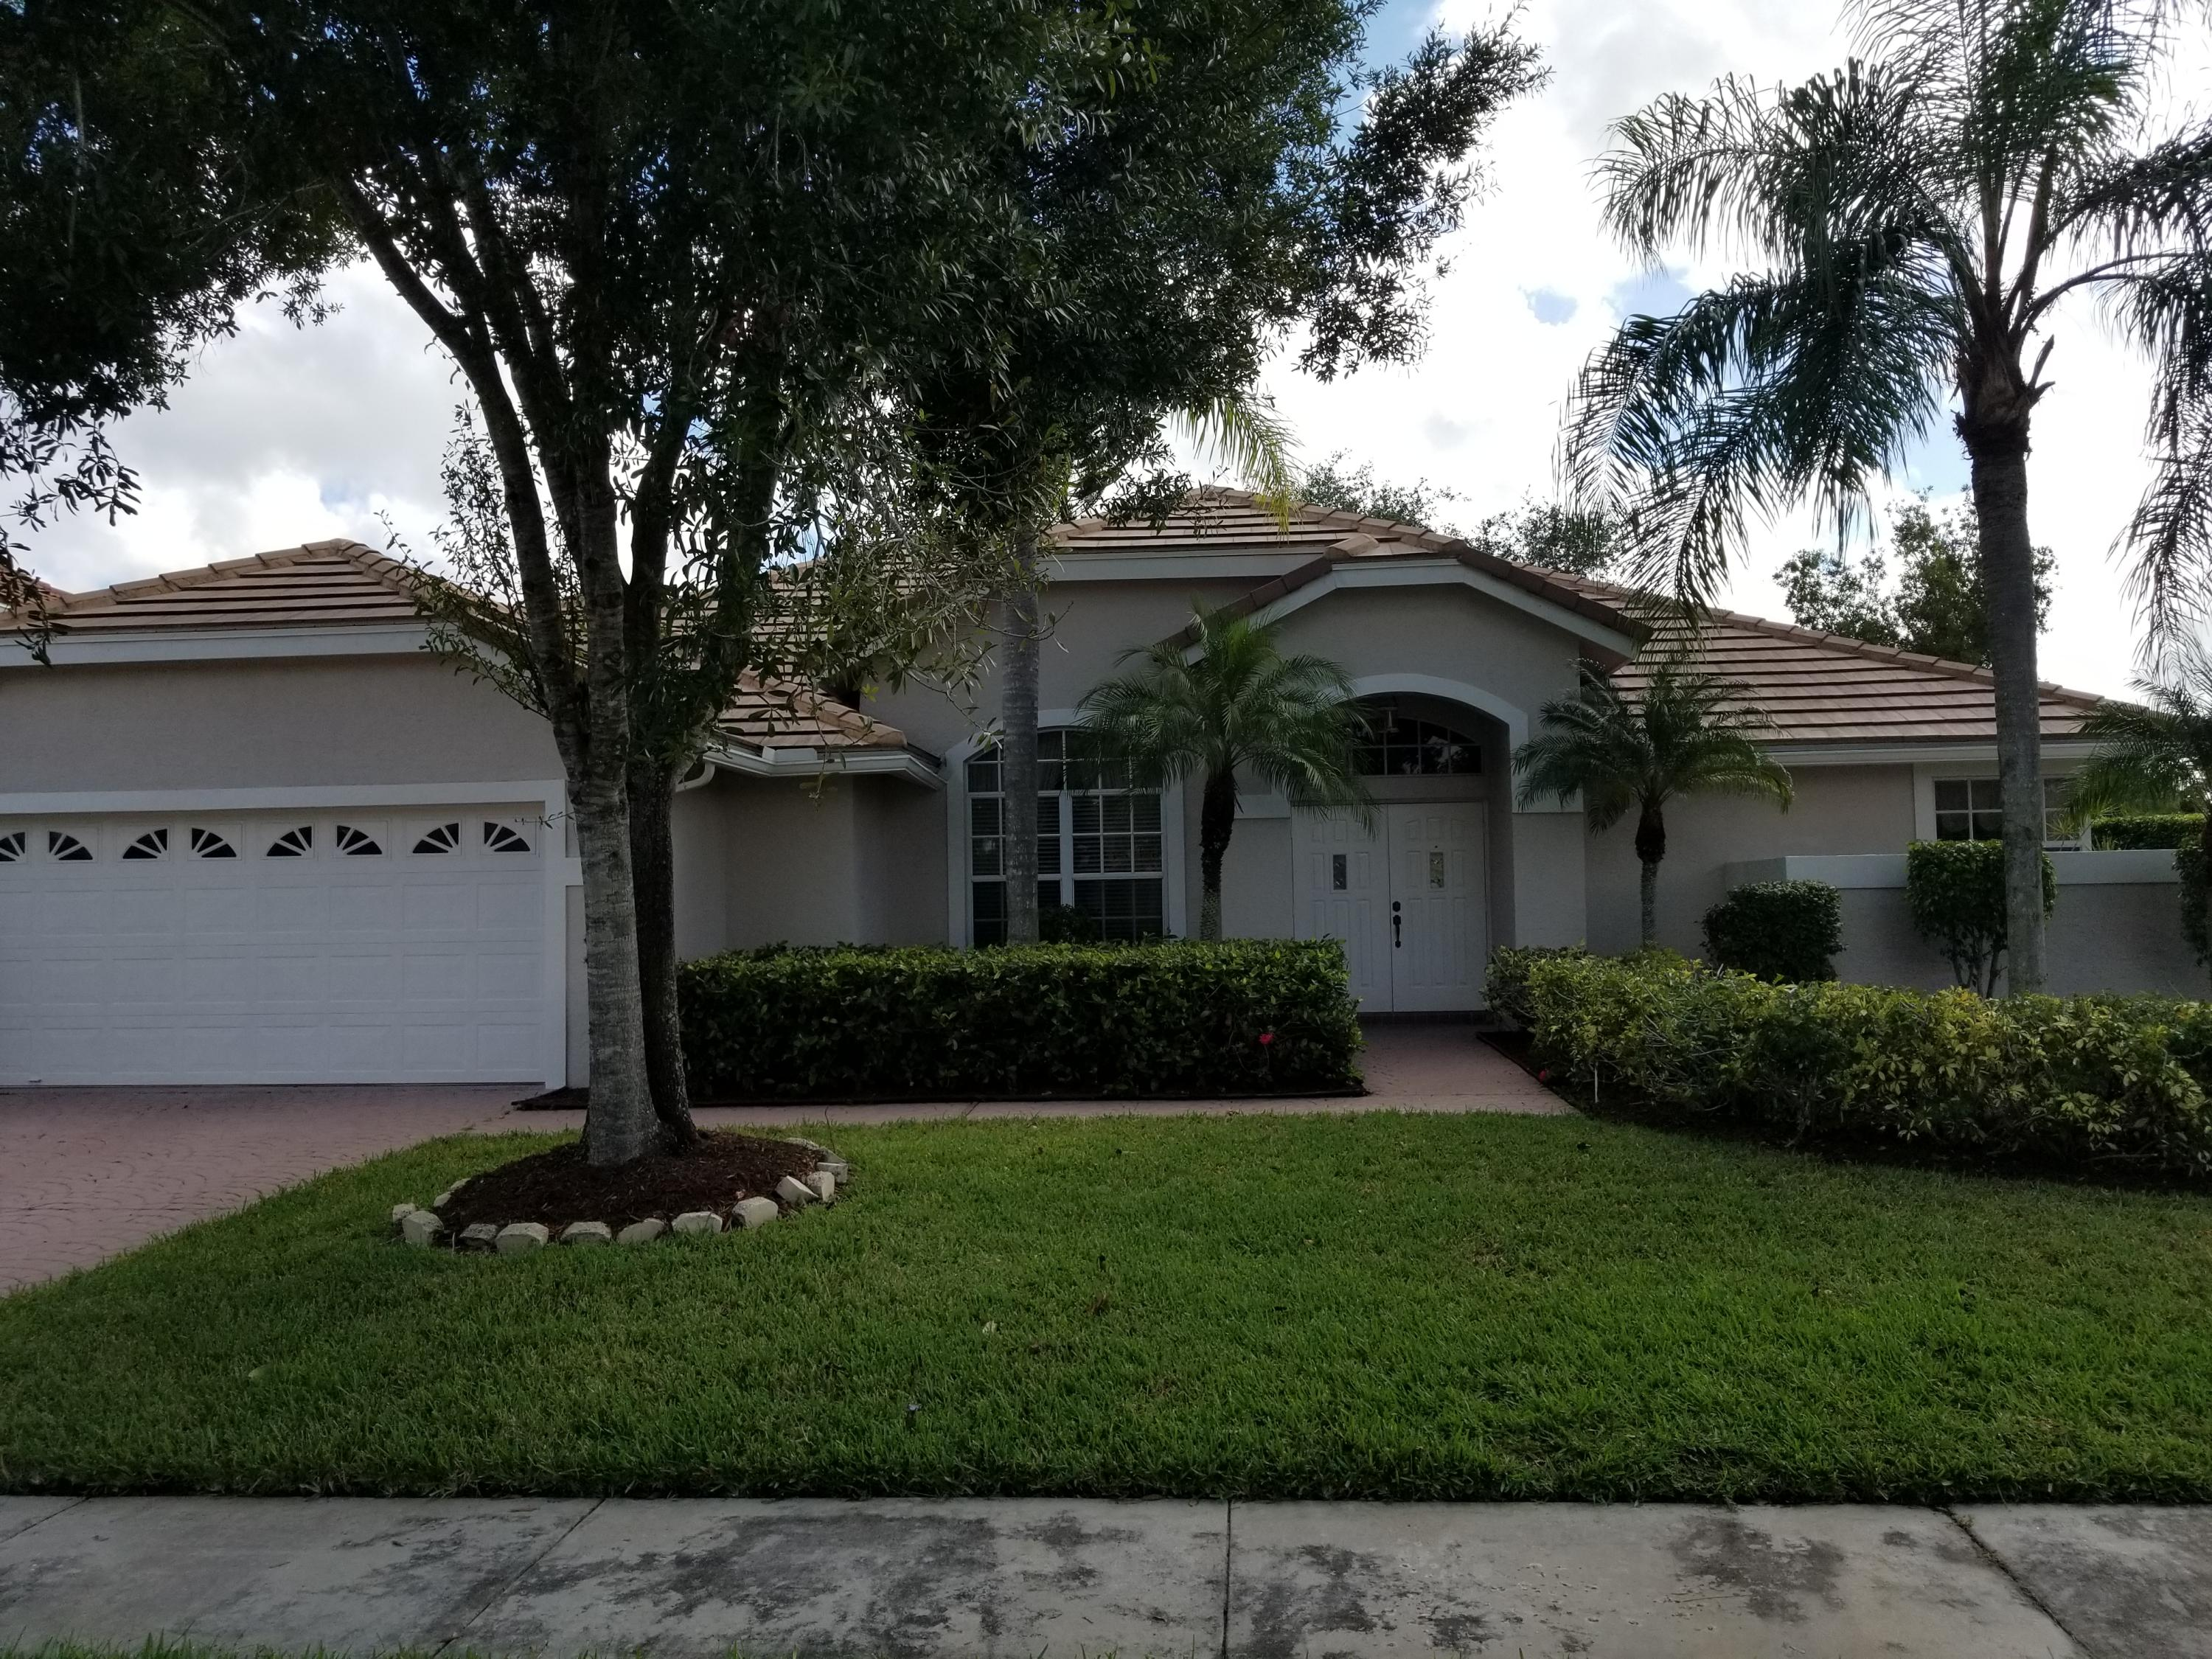 Original ownership, open community area and playground in walking distance. Multiple community swimming pools, tennis, basketball, and community building to rent for parties.All schools are ''A'' rated, sidewalks throughout community. New roof and AC in 2016 Roof and AC done in 2016, Interior and Exterior Painted November 2018 No showings till 11.19.1018